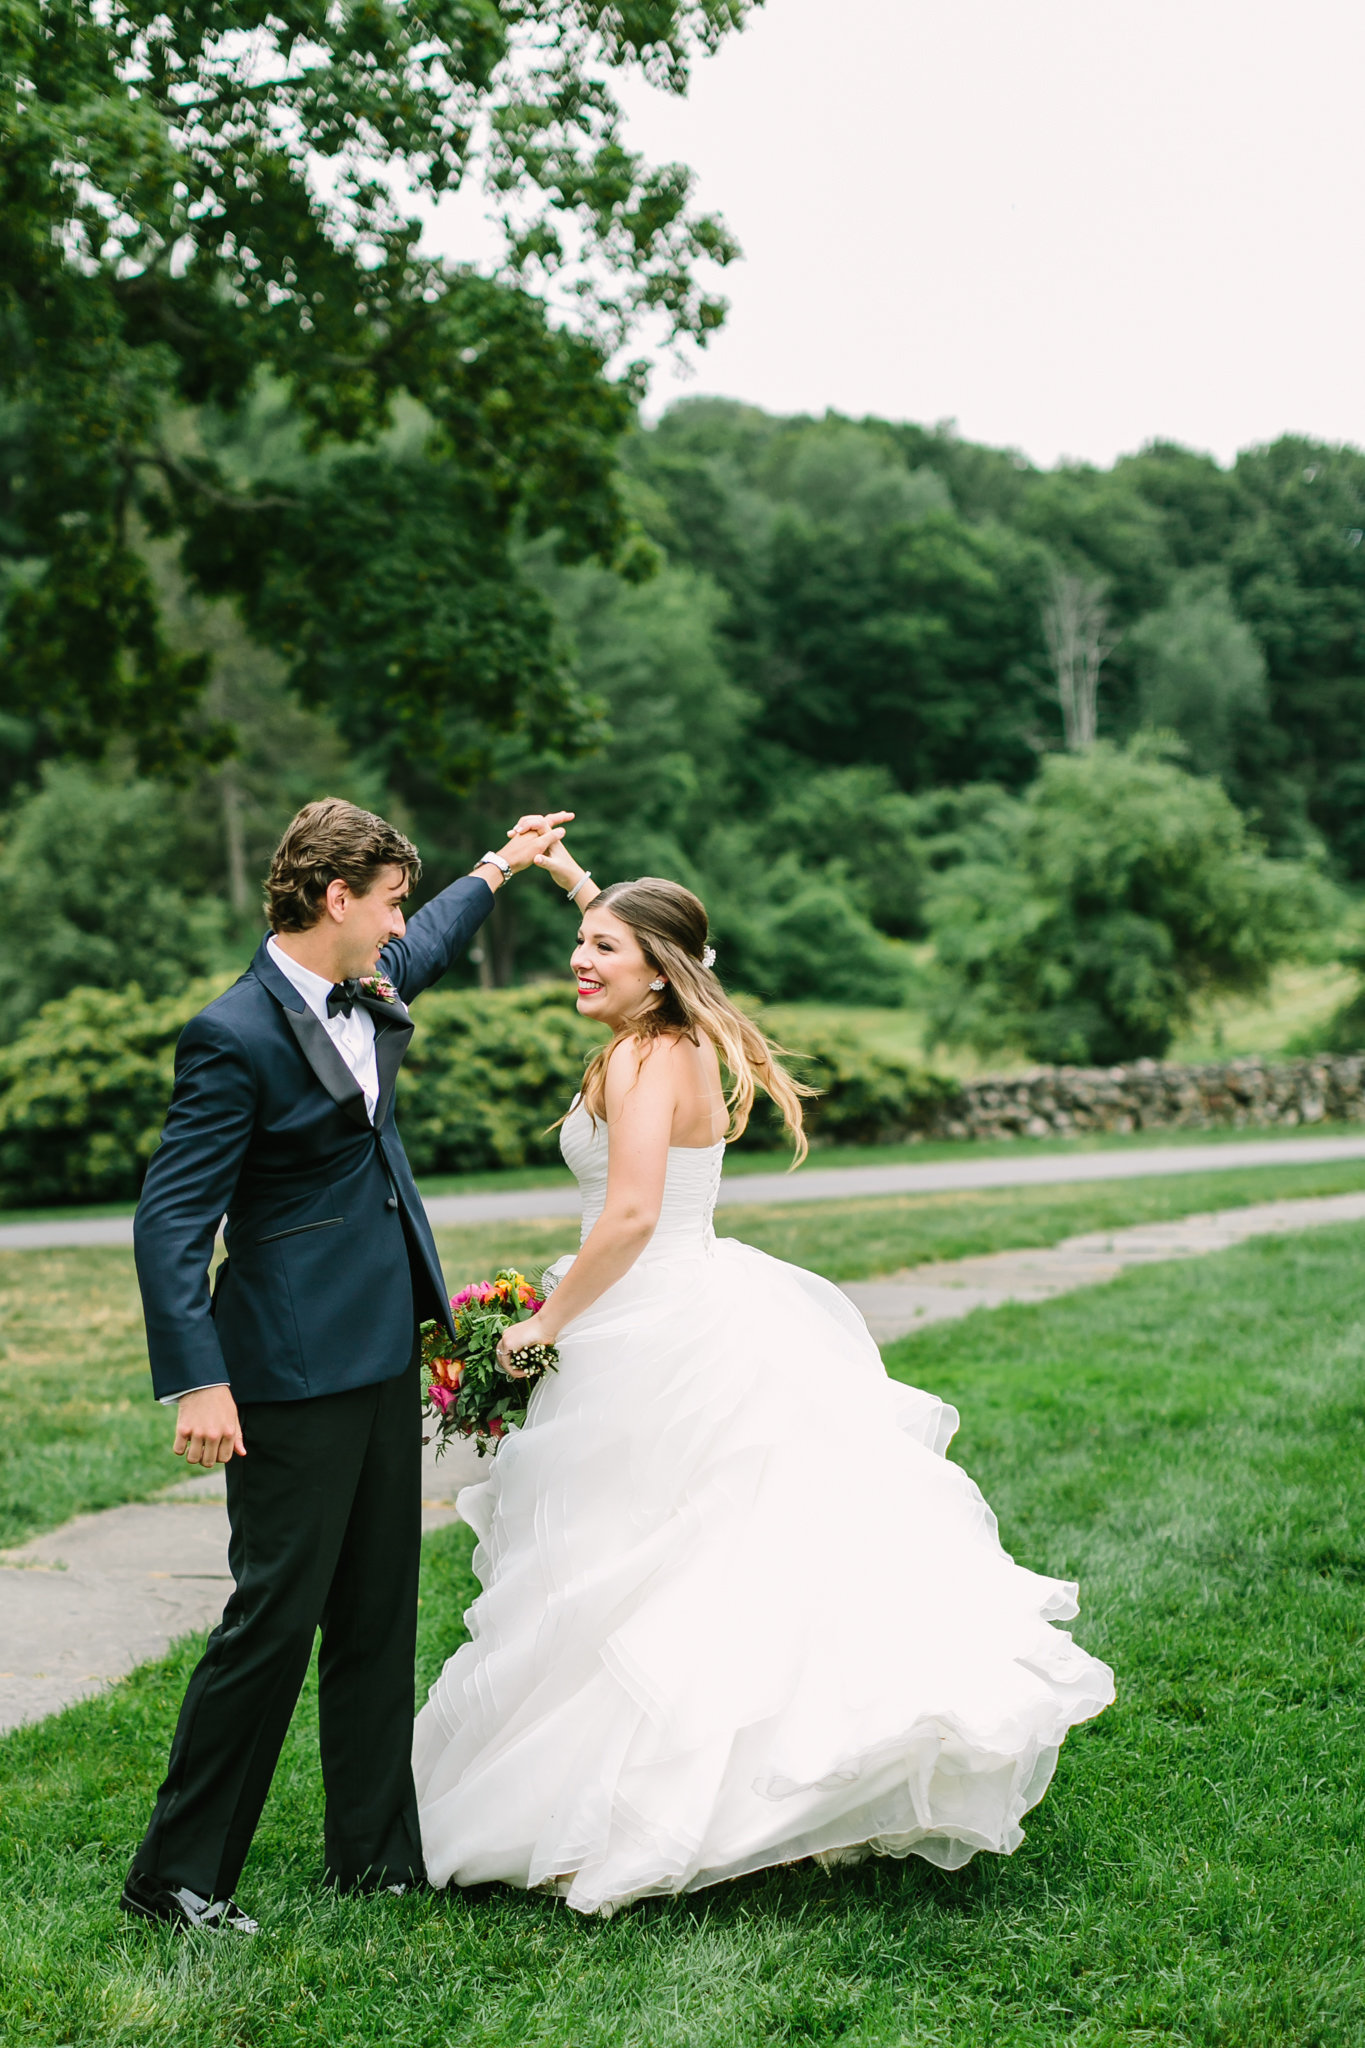 Bhullphotography_hillsteadmuseumwedding-102